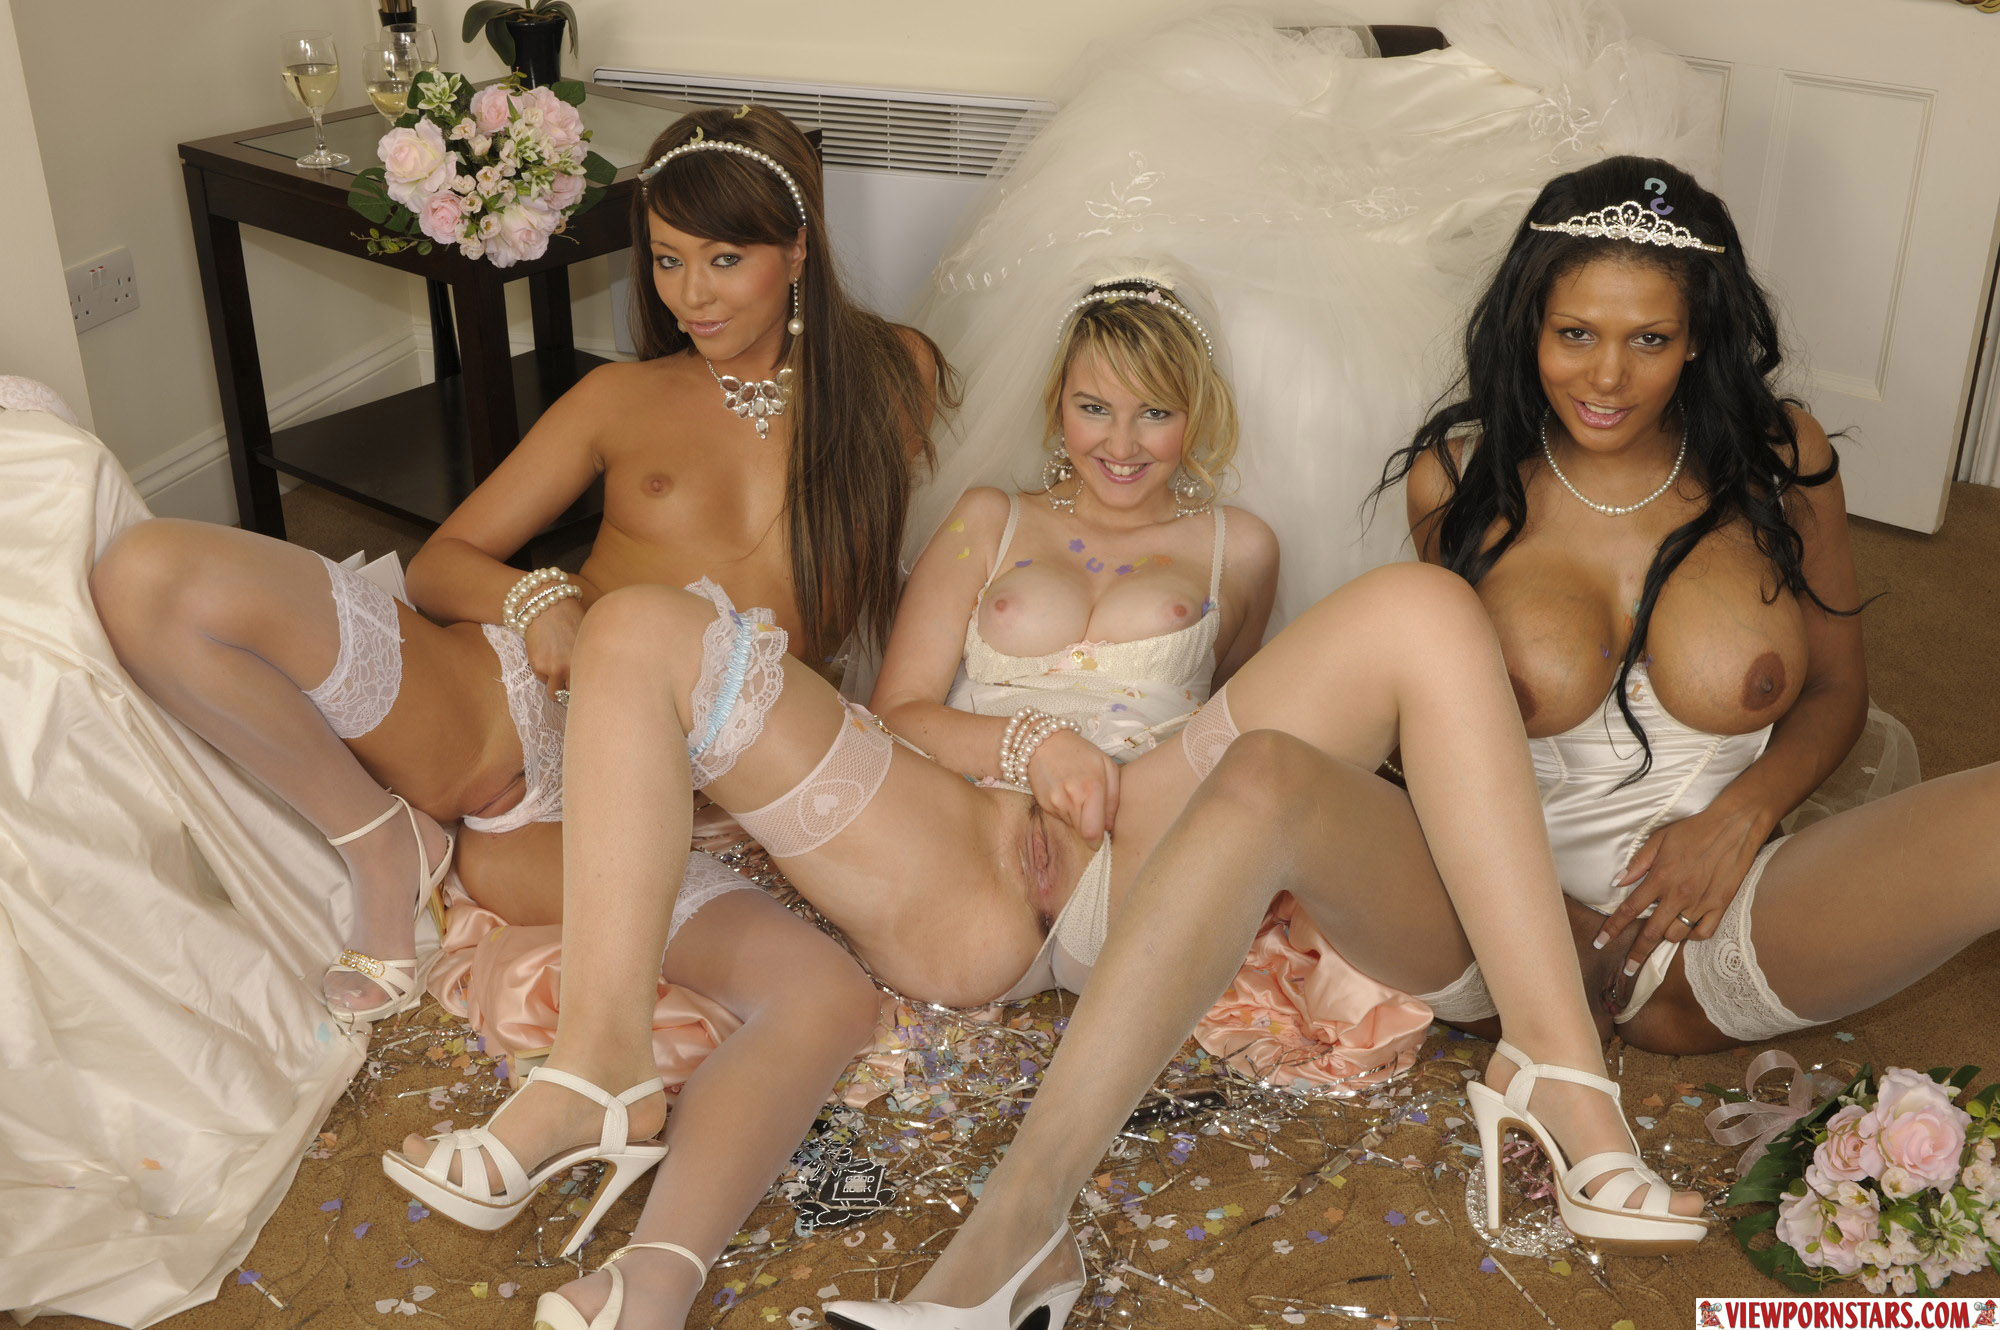 Porn Star Weddings 22